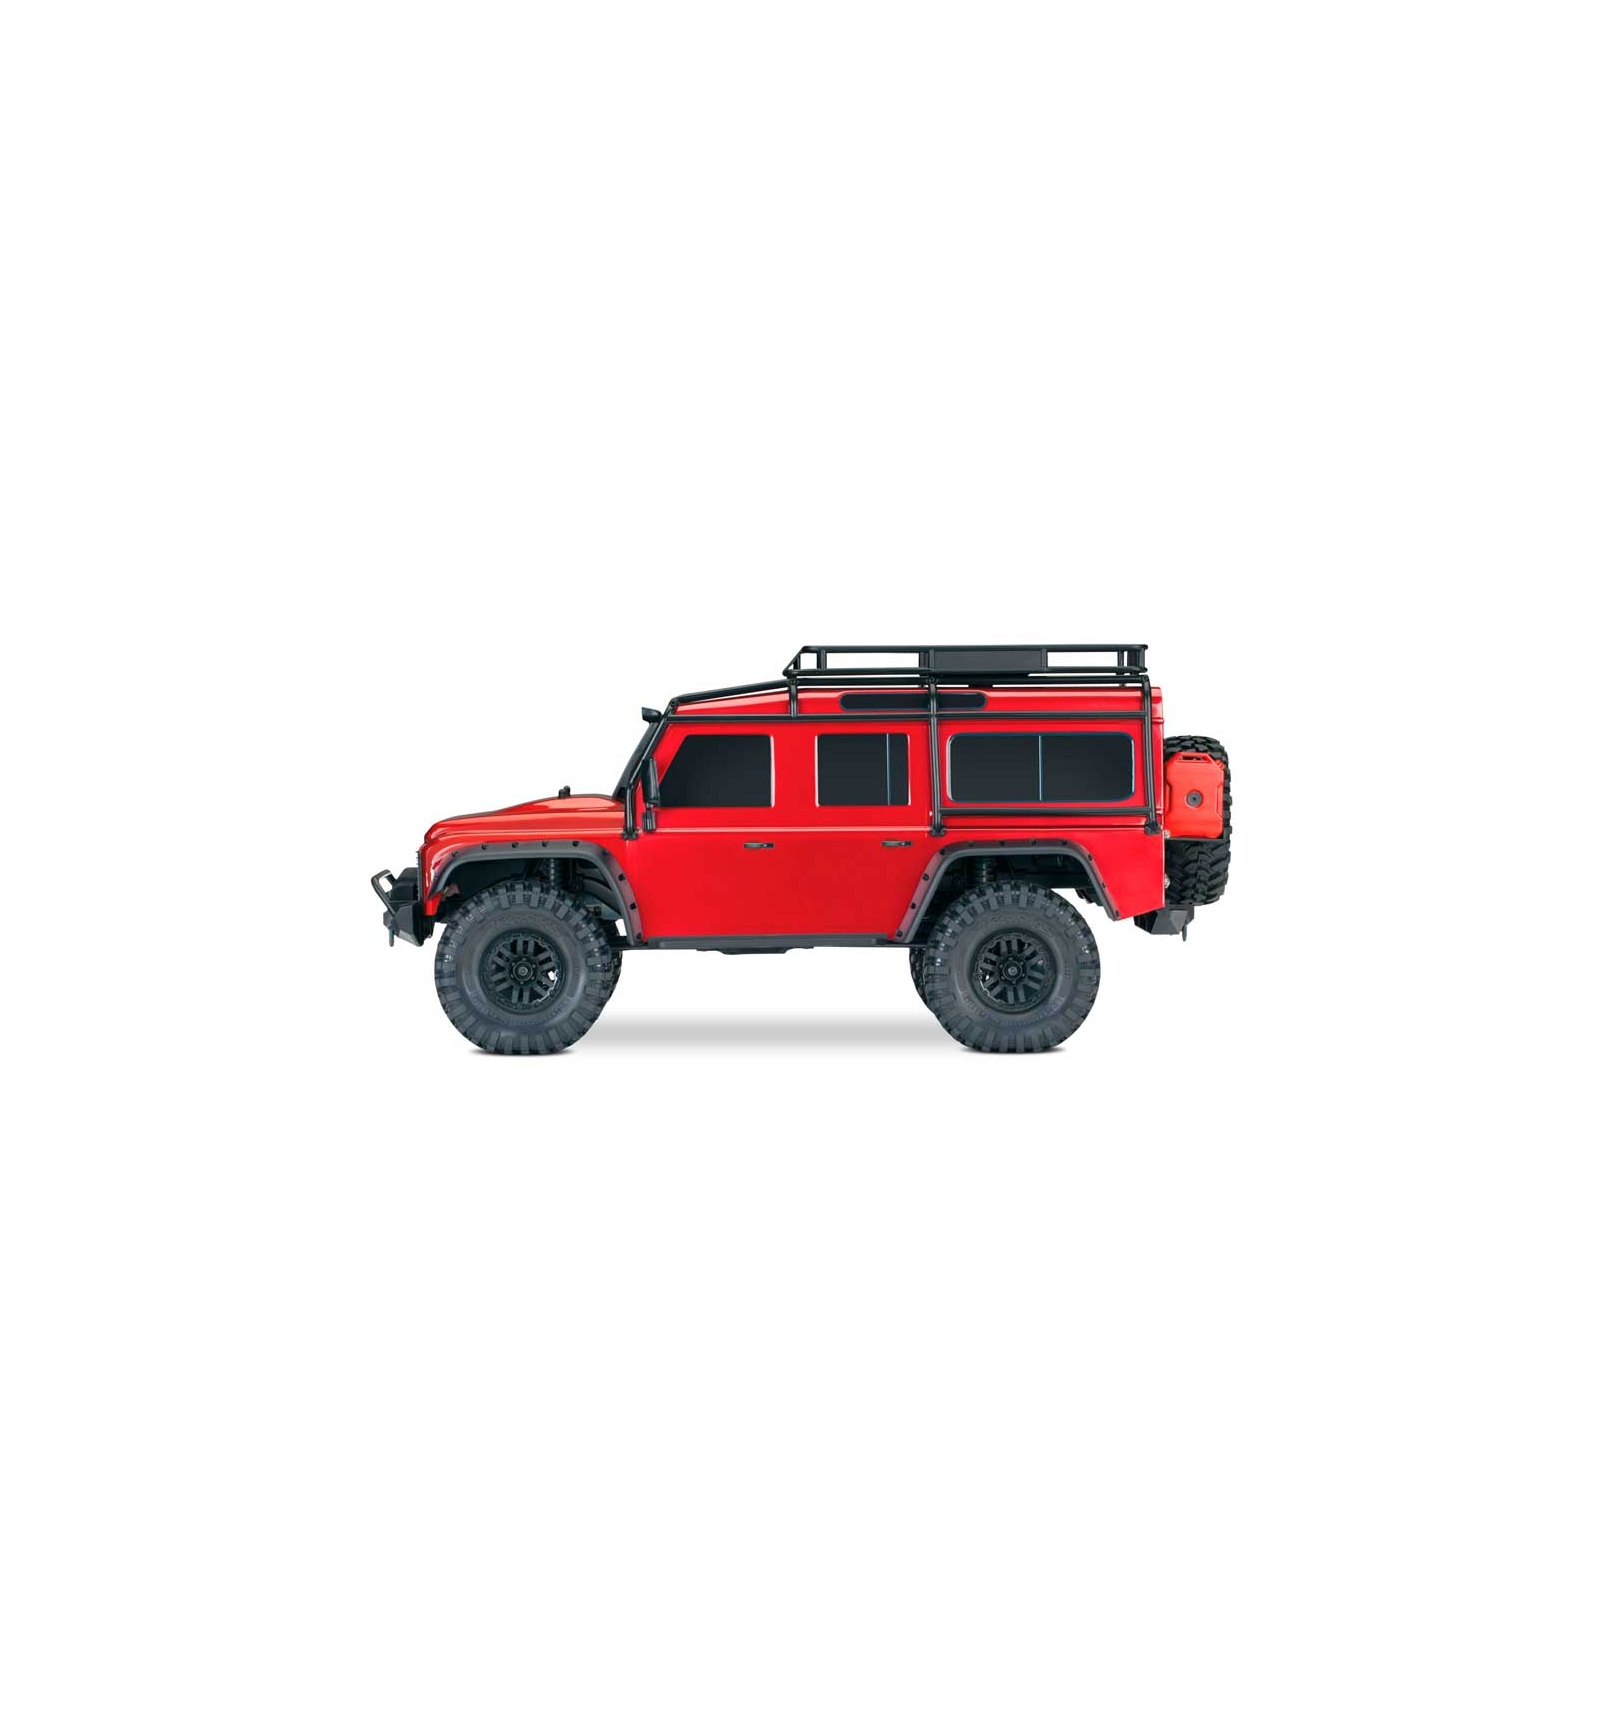 hight resolution of  traxxas trx4 land rover defender 4x4 1 10